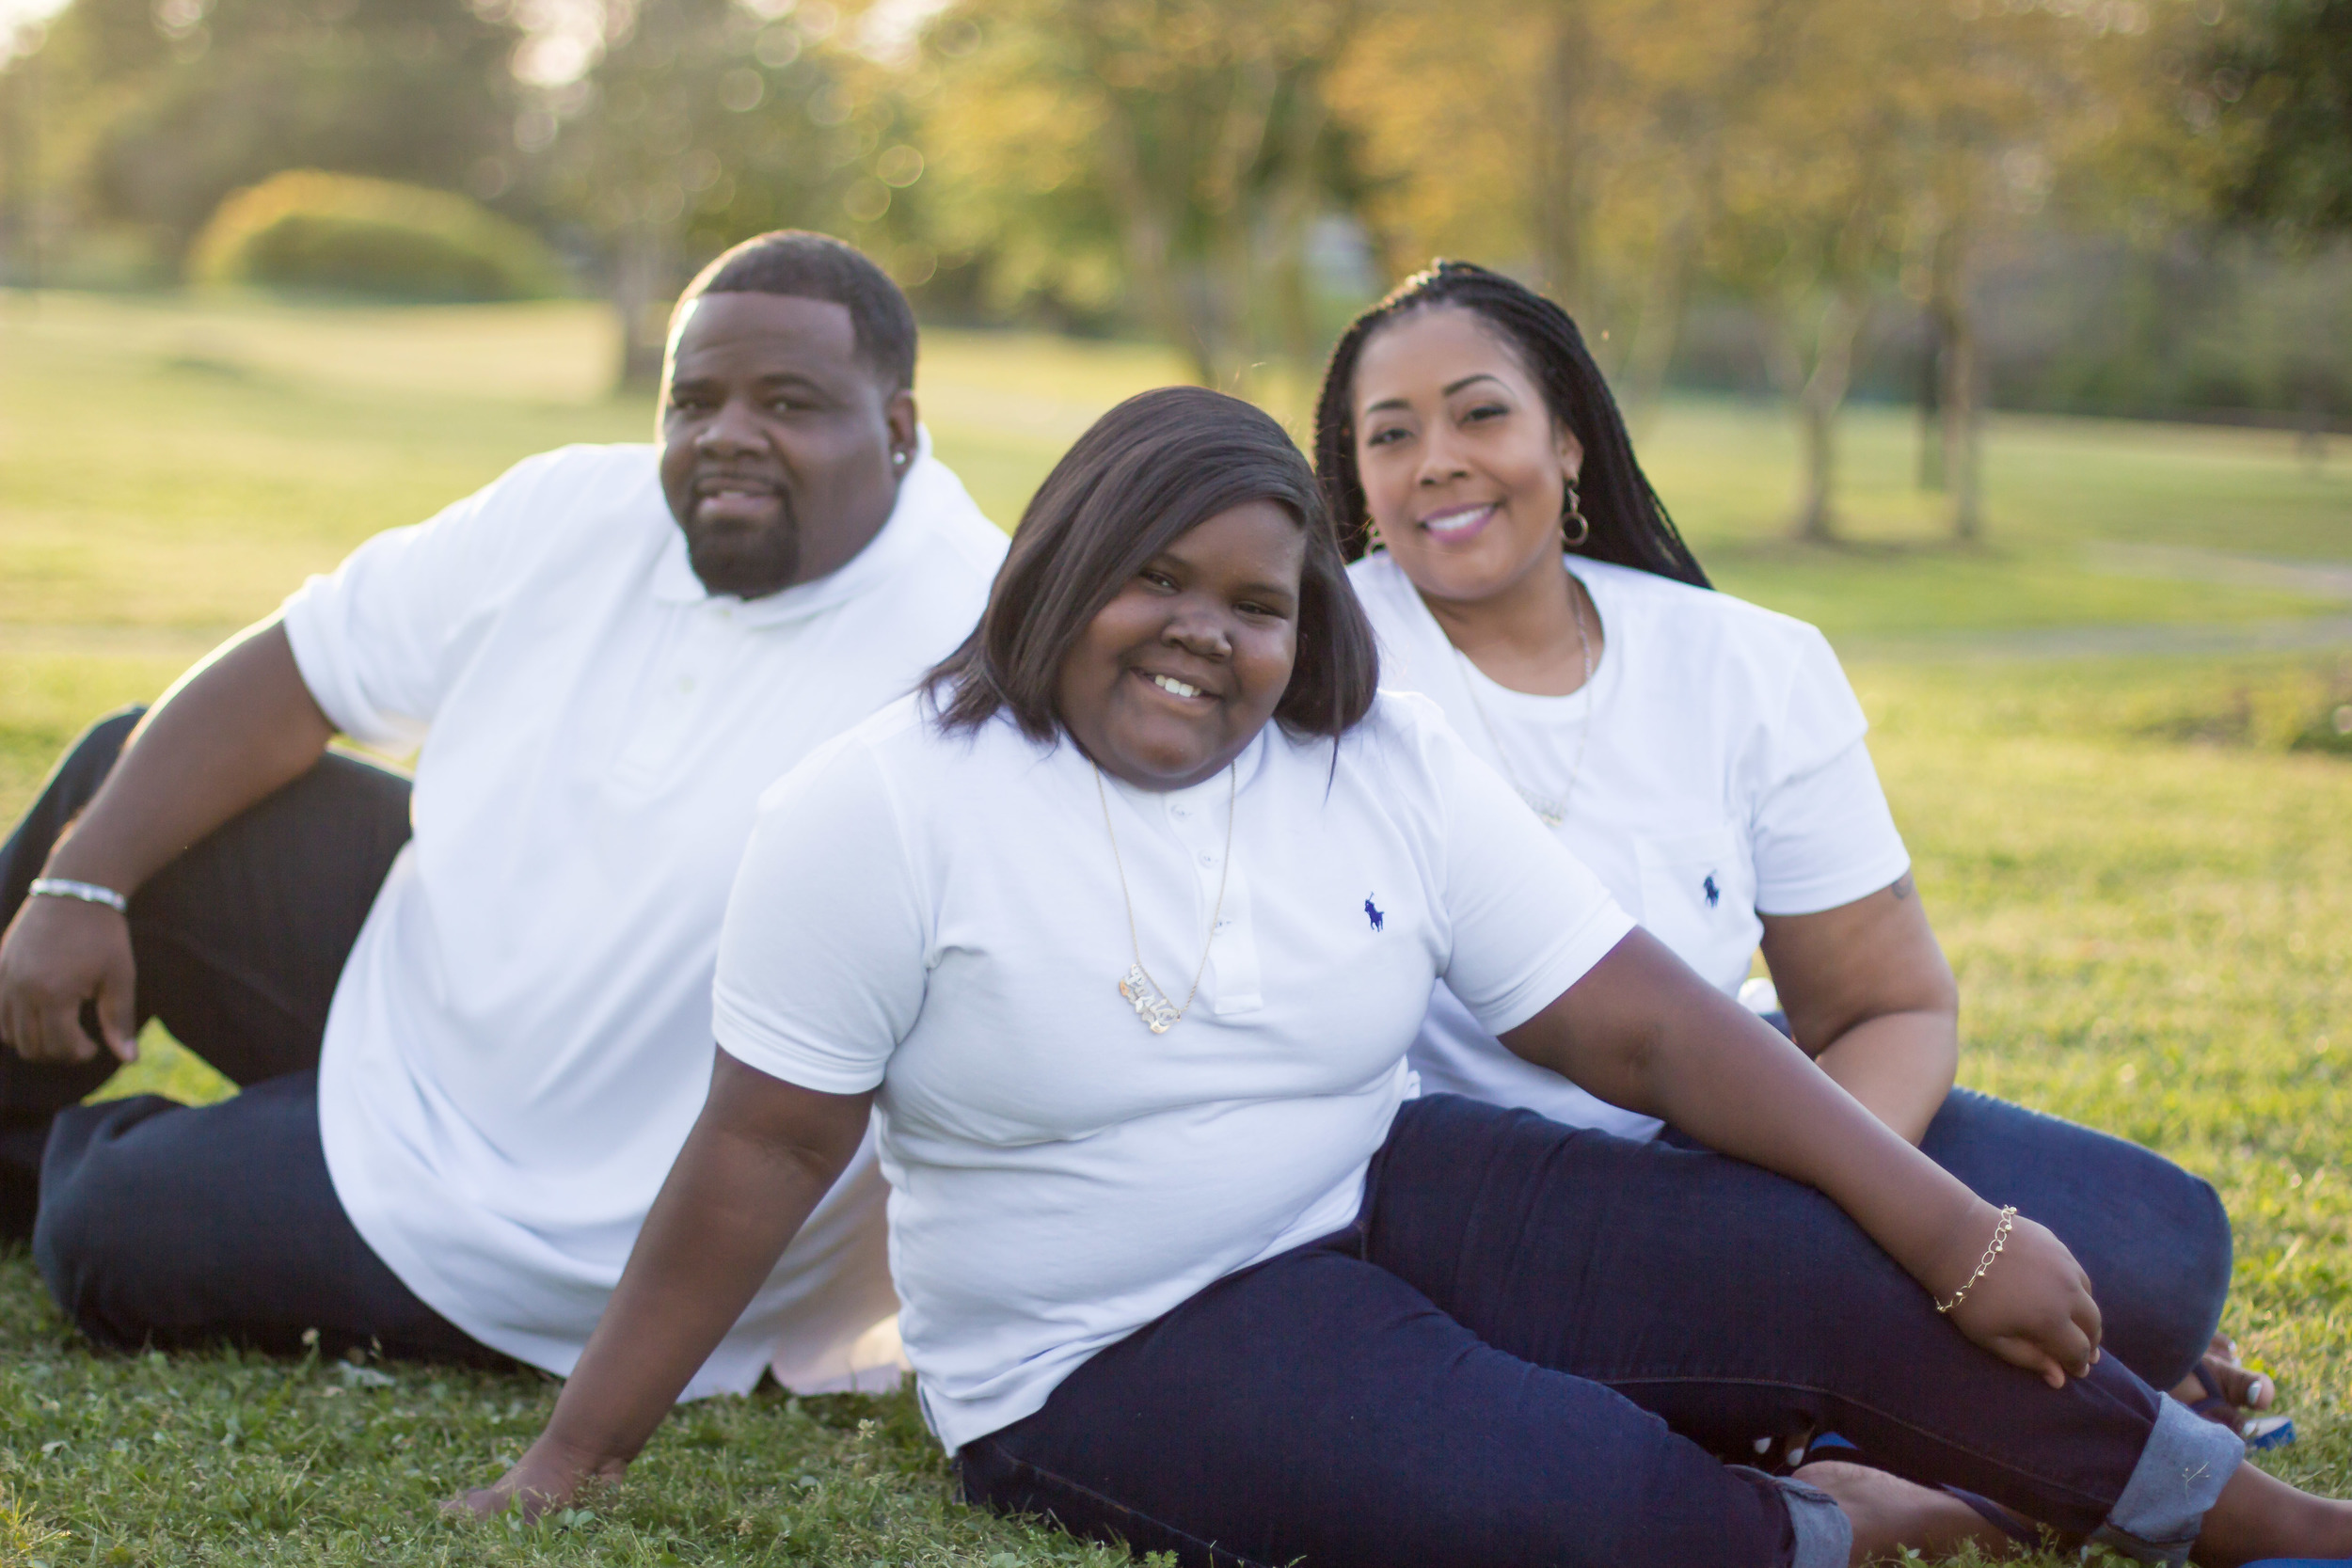 Greenville NC Family Portraits   Bryant Tyson Photography   Tonya Smith   Greenville Town Commons